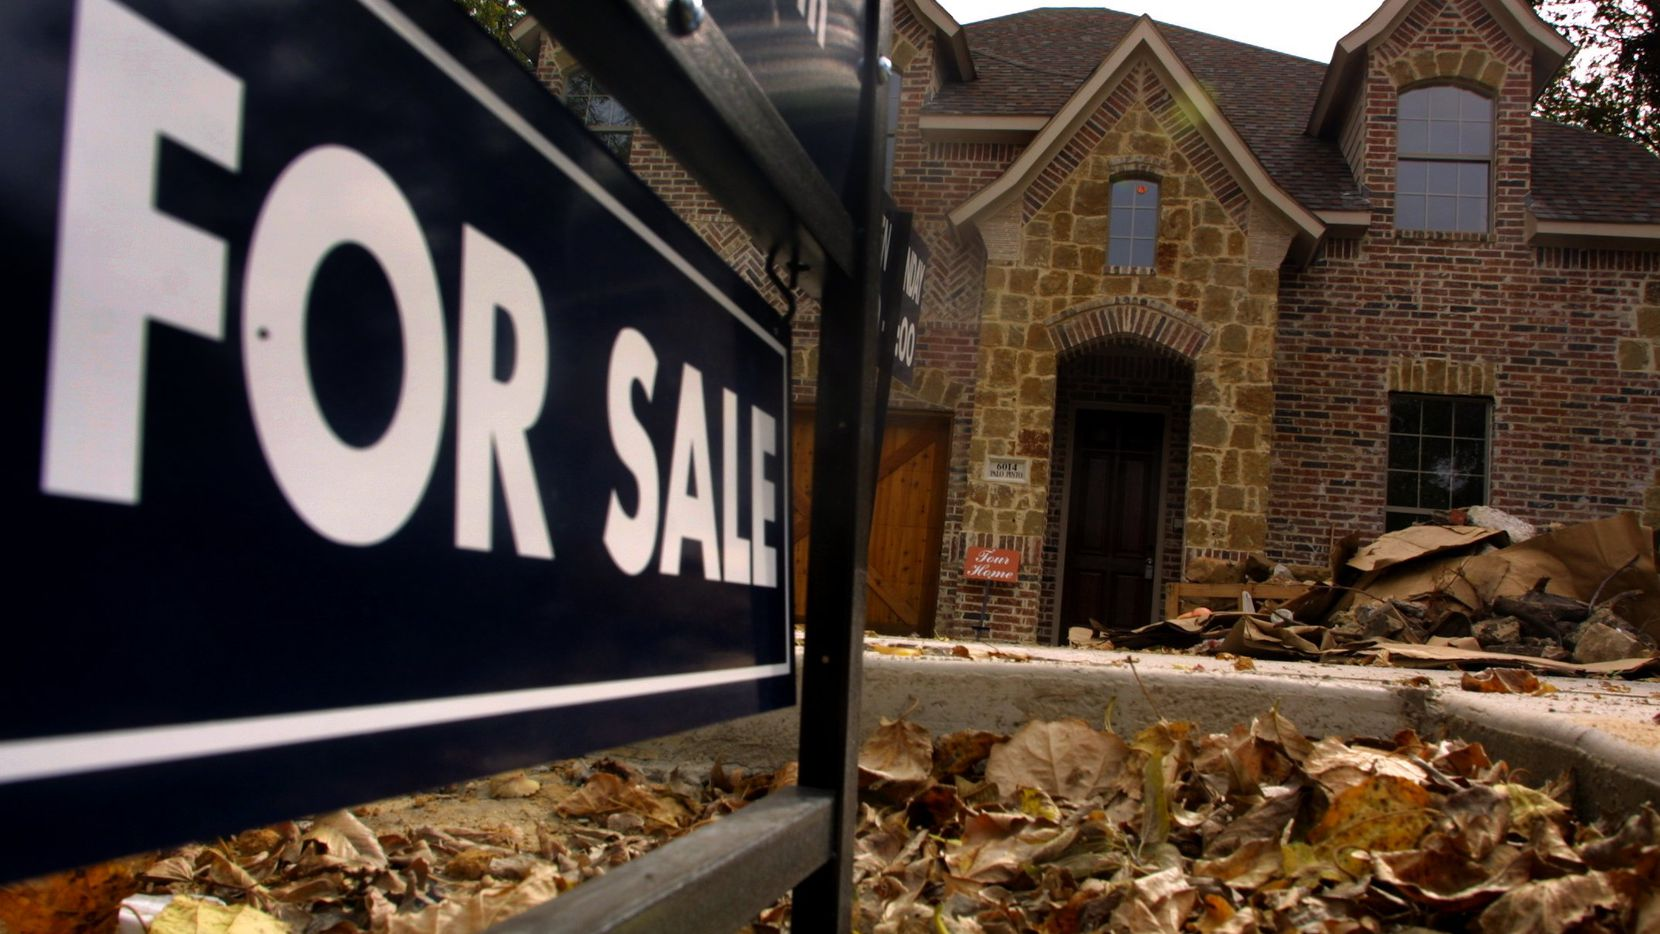 Dallas-Fort Worth has seen one of the biggest jumps in the number of homes for sale among major U.S. markets, according to a study by Realtor.com. Nearly 8,000 more houses were on the market here at the end of June than at the end of 2017.